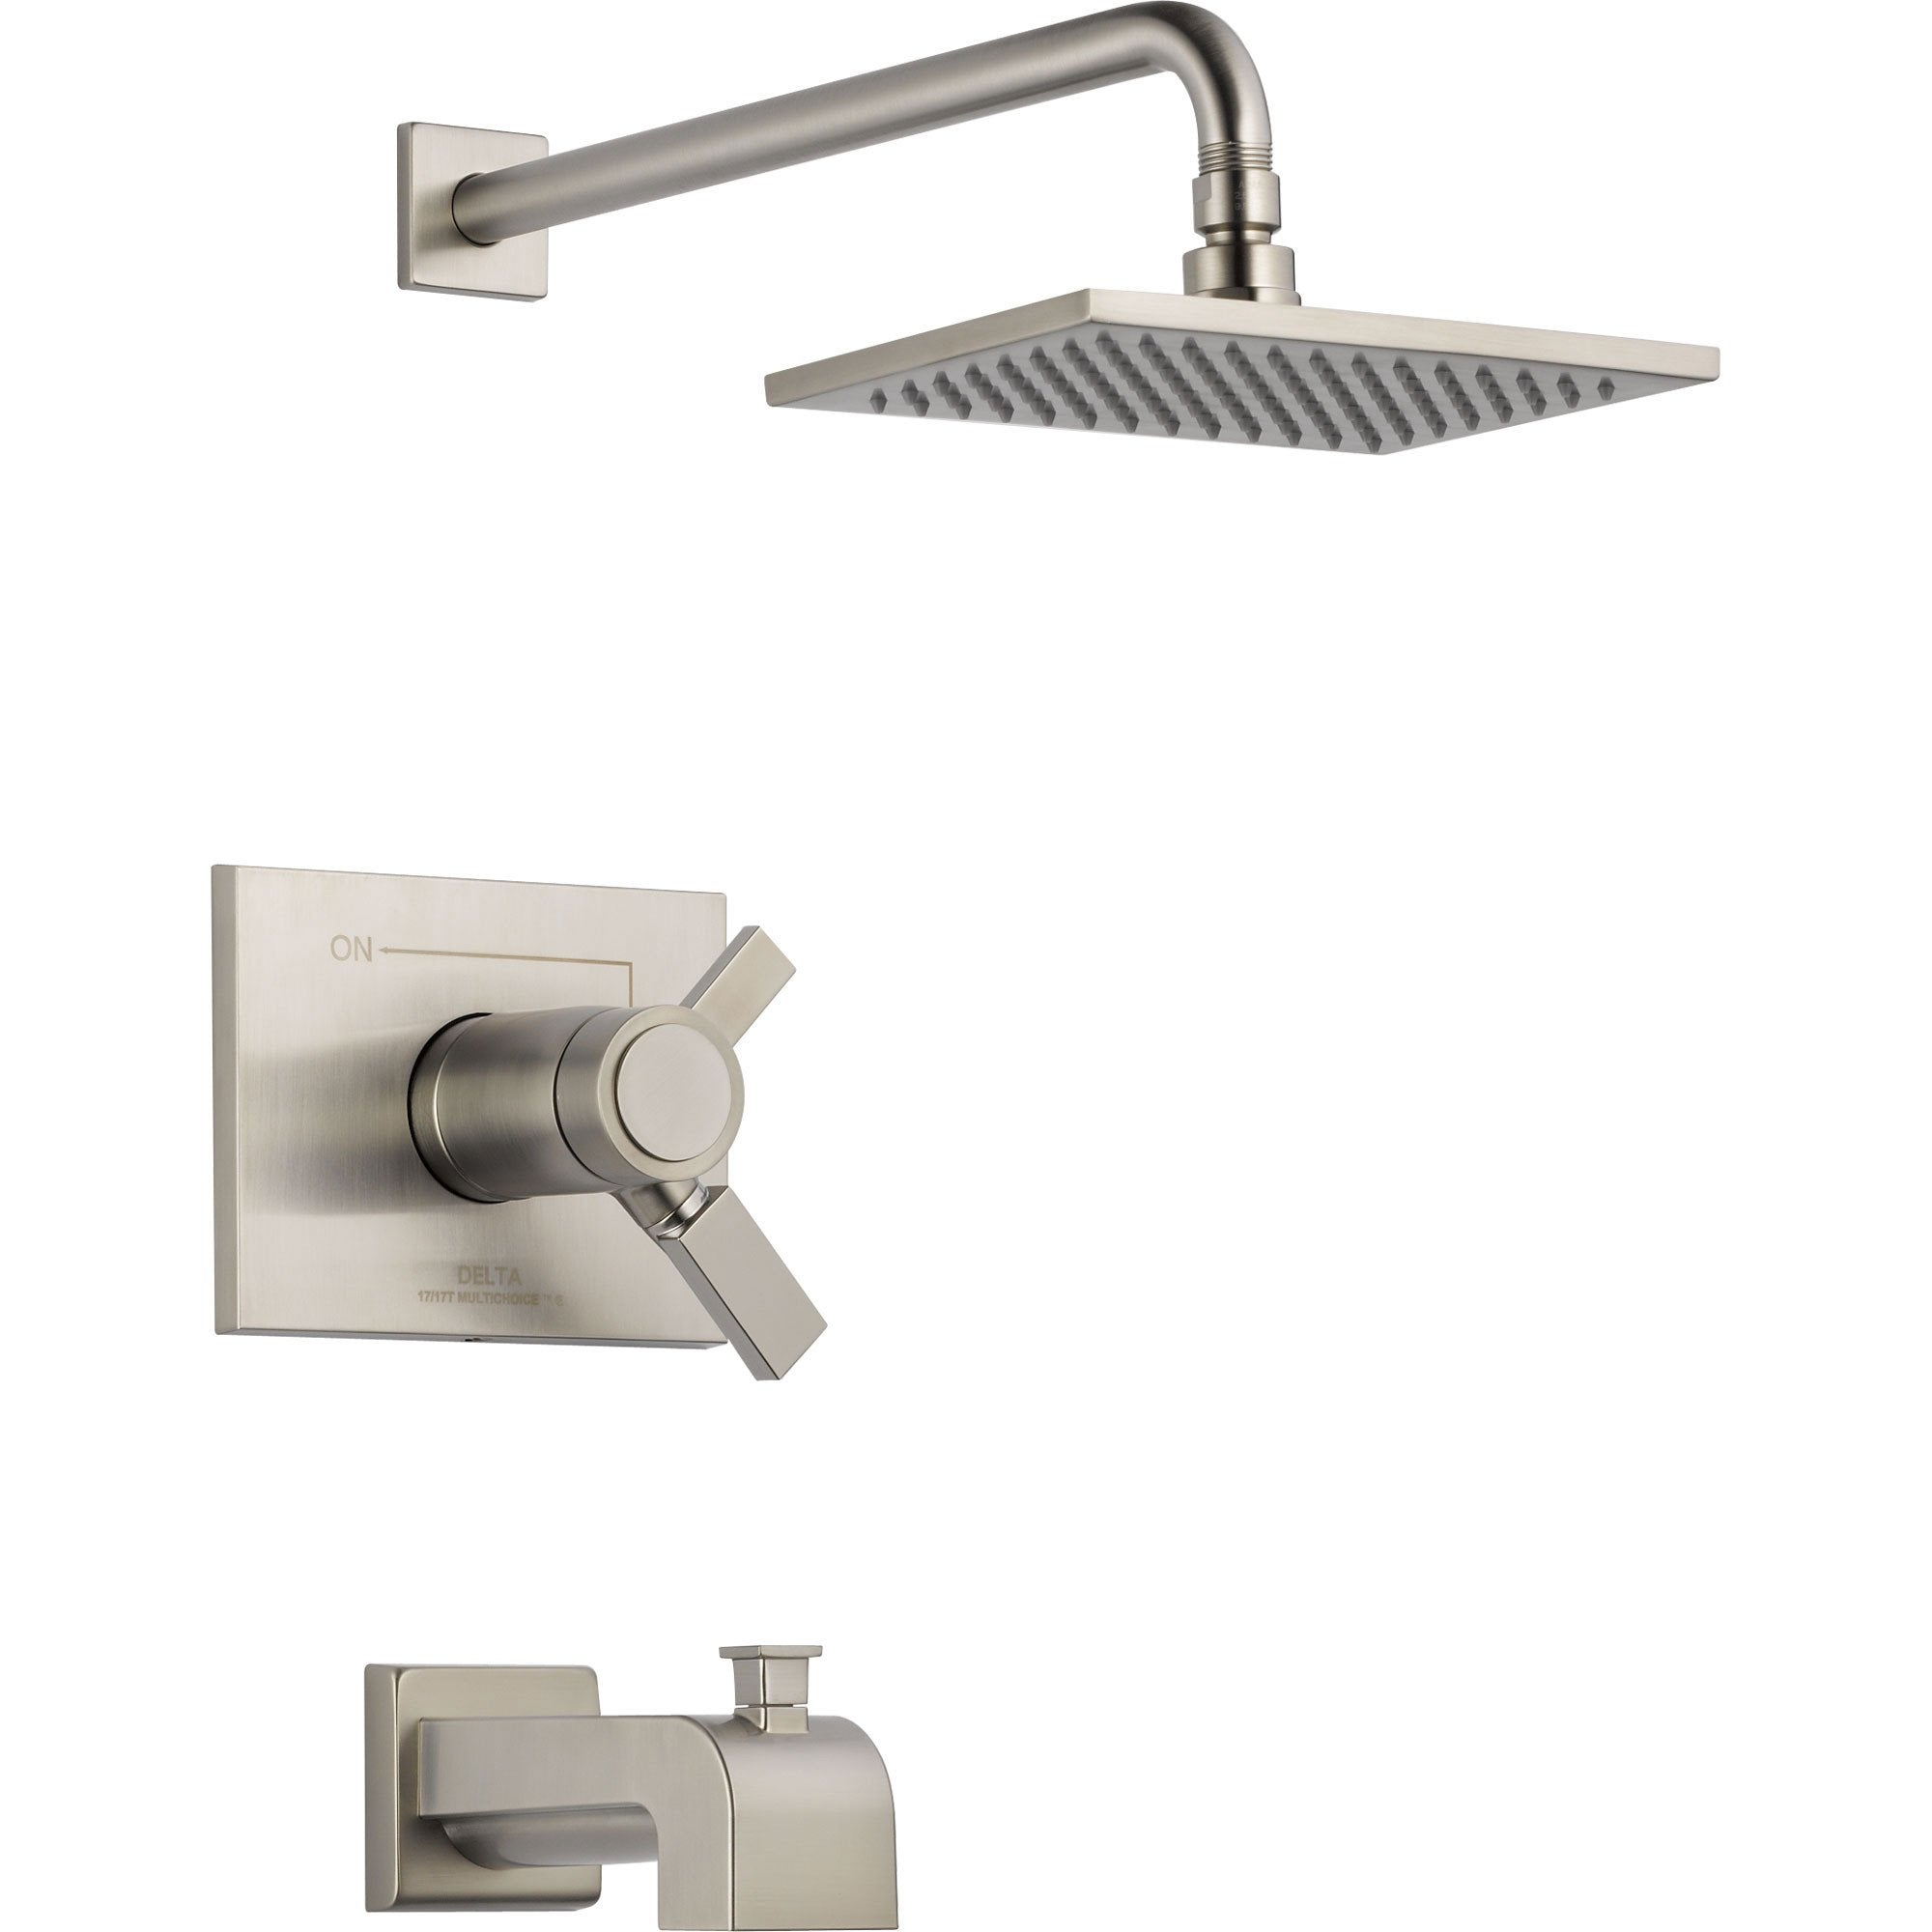 Delta Vero Thermostatic Dual Control Stainless Steel Tub & Shower w/ Valve D532V